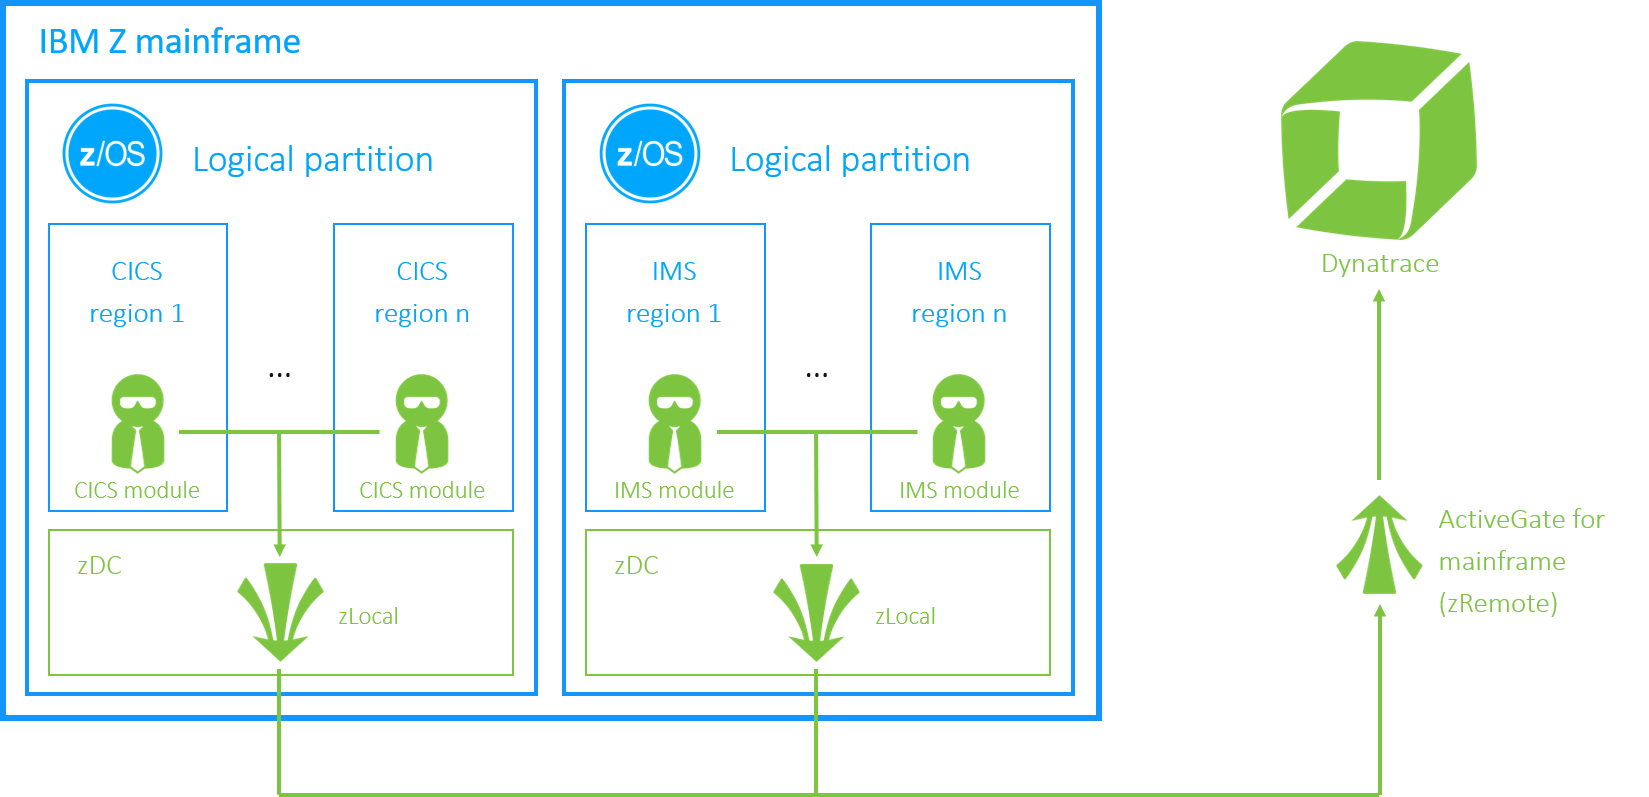 Dynatrace architecture for z/OS